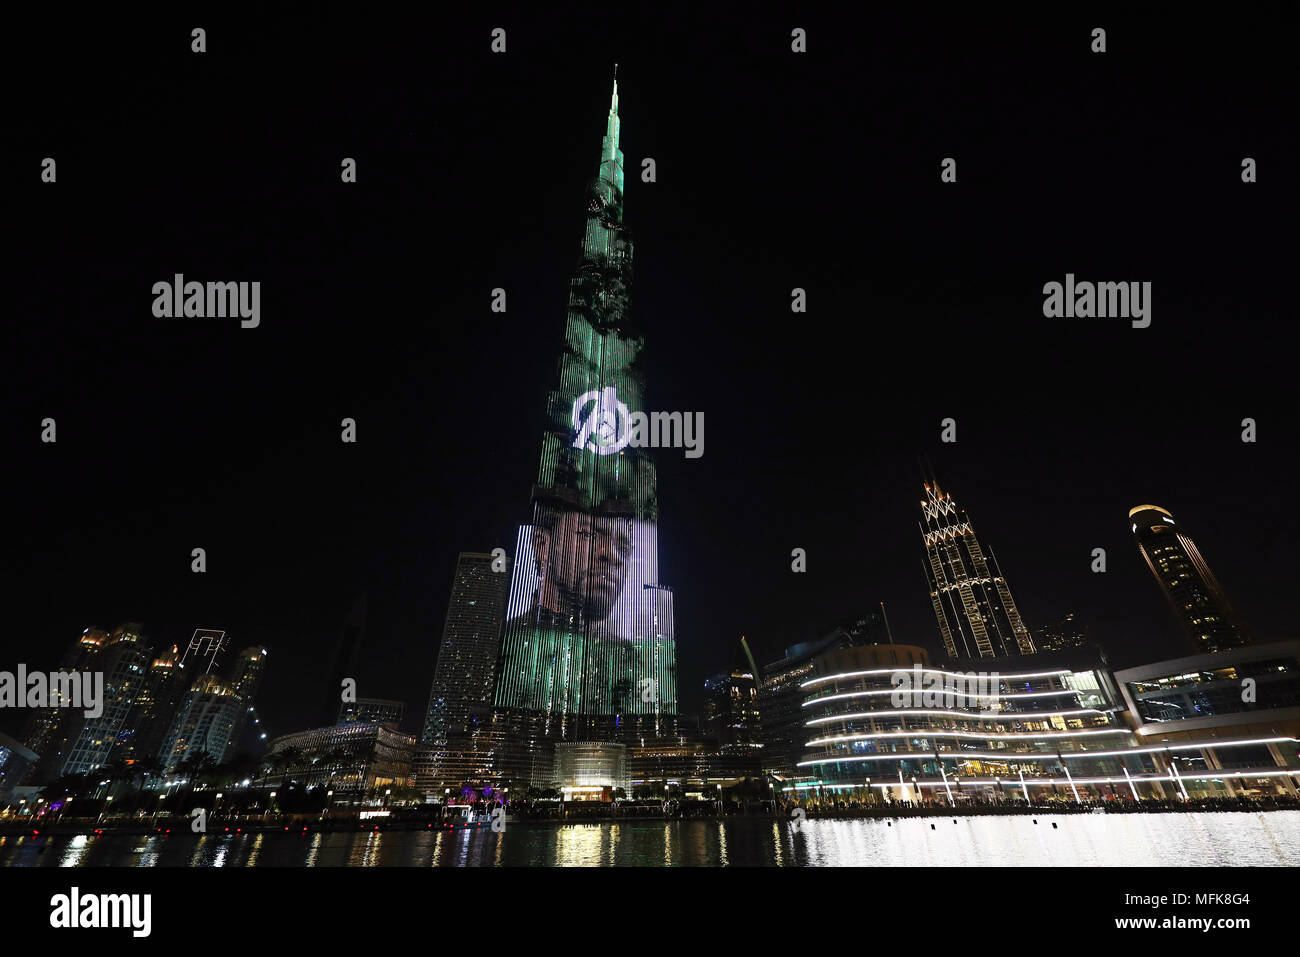 Dubai, UAE. 26th April 2018. Chadwick Boseman as the Black Panther. The Burj Khalifa, the world's tallest building, was illuminated with film scenes from Marvel's Avengers Infinity War to promote the launch of the film in Dubai, UAE. Credit: Paul Brown/Alamy Live News - Stock Image